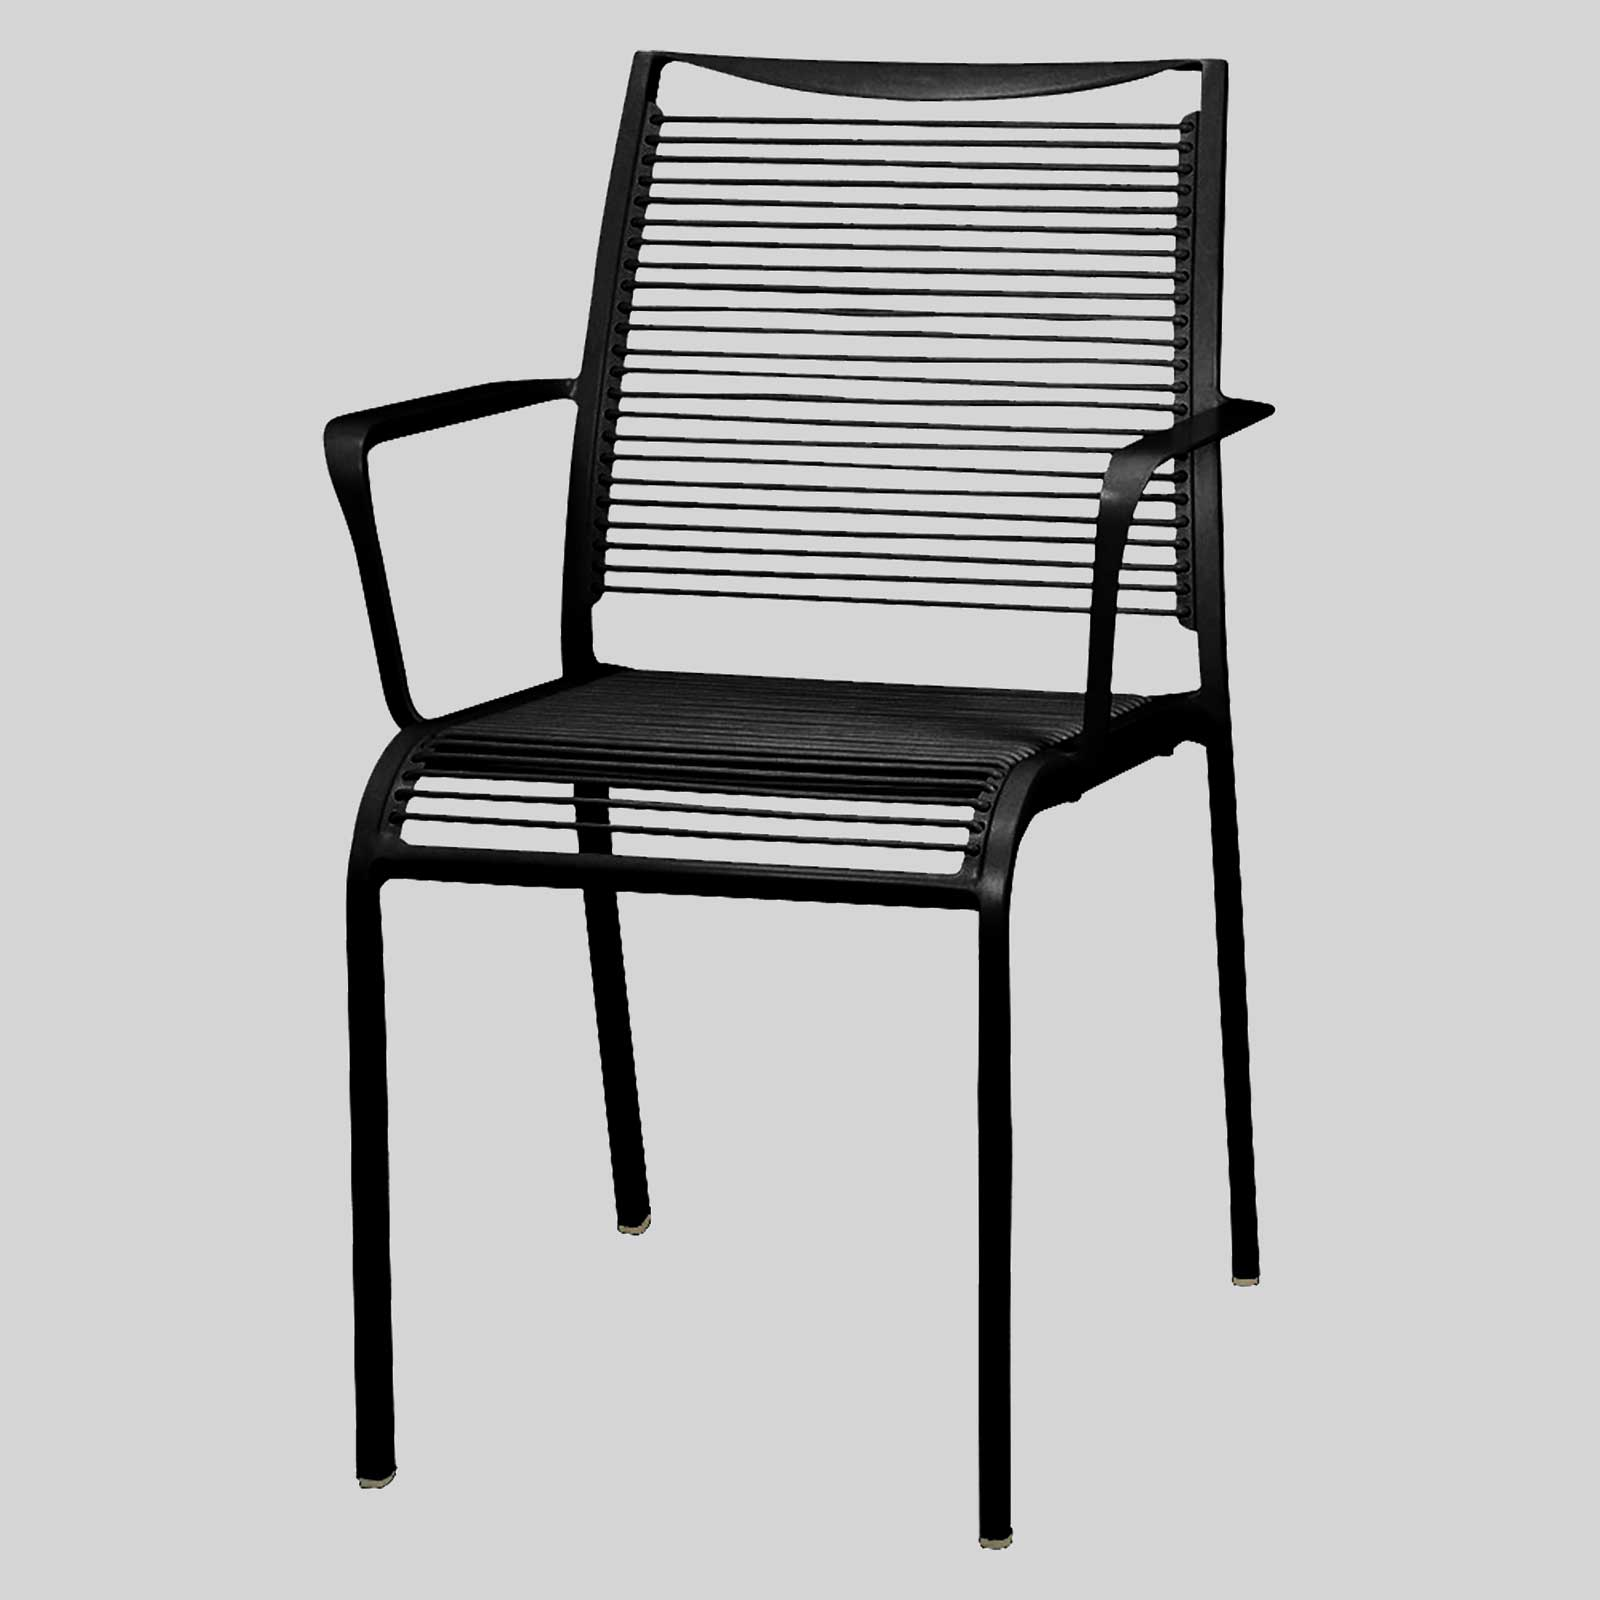 Outdoor cafe chairs - Waverly Outdoor Cafe Chairs With Arms Black